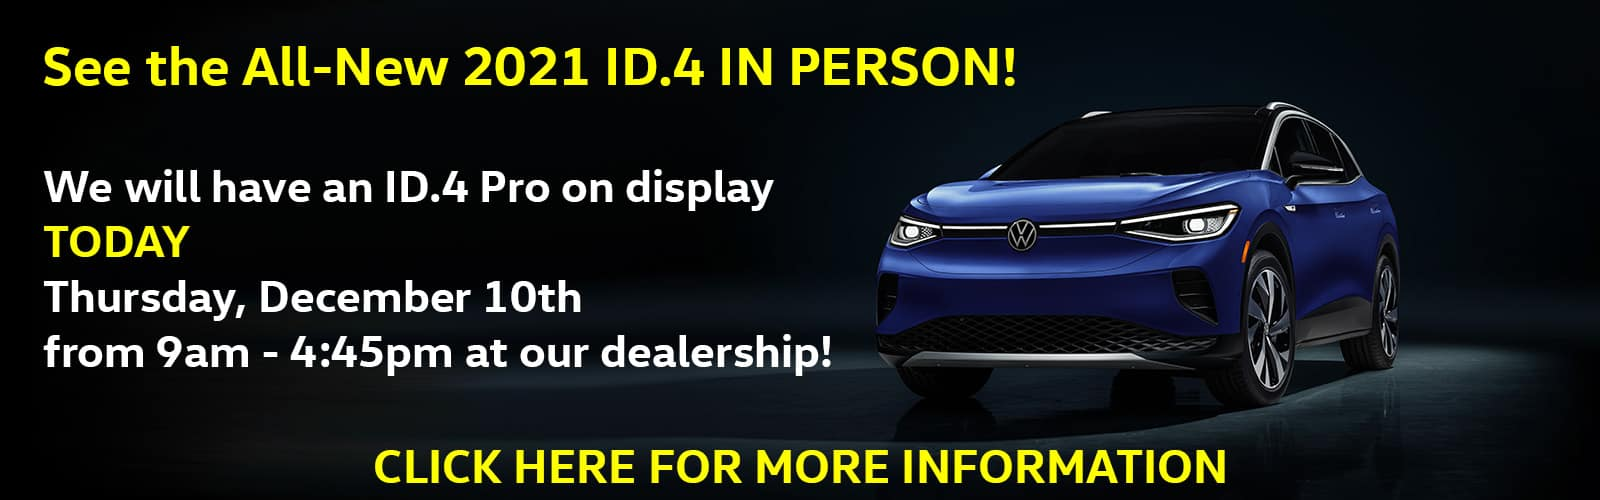 2021 VW ID.4 Reveal TODAY